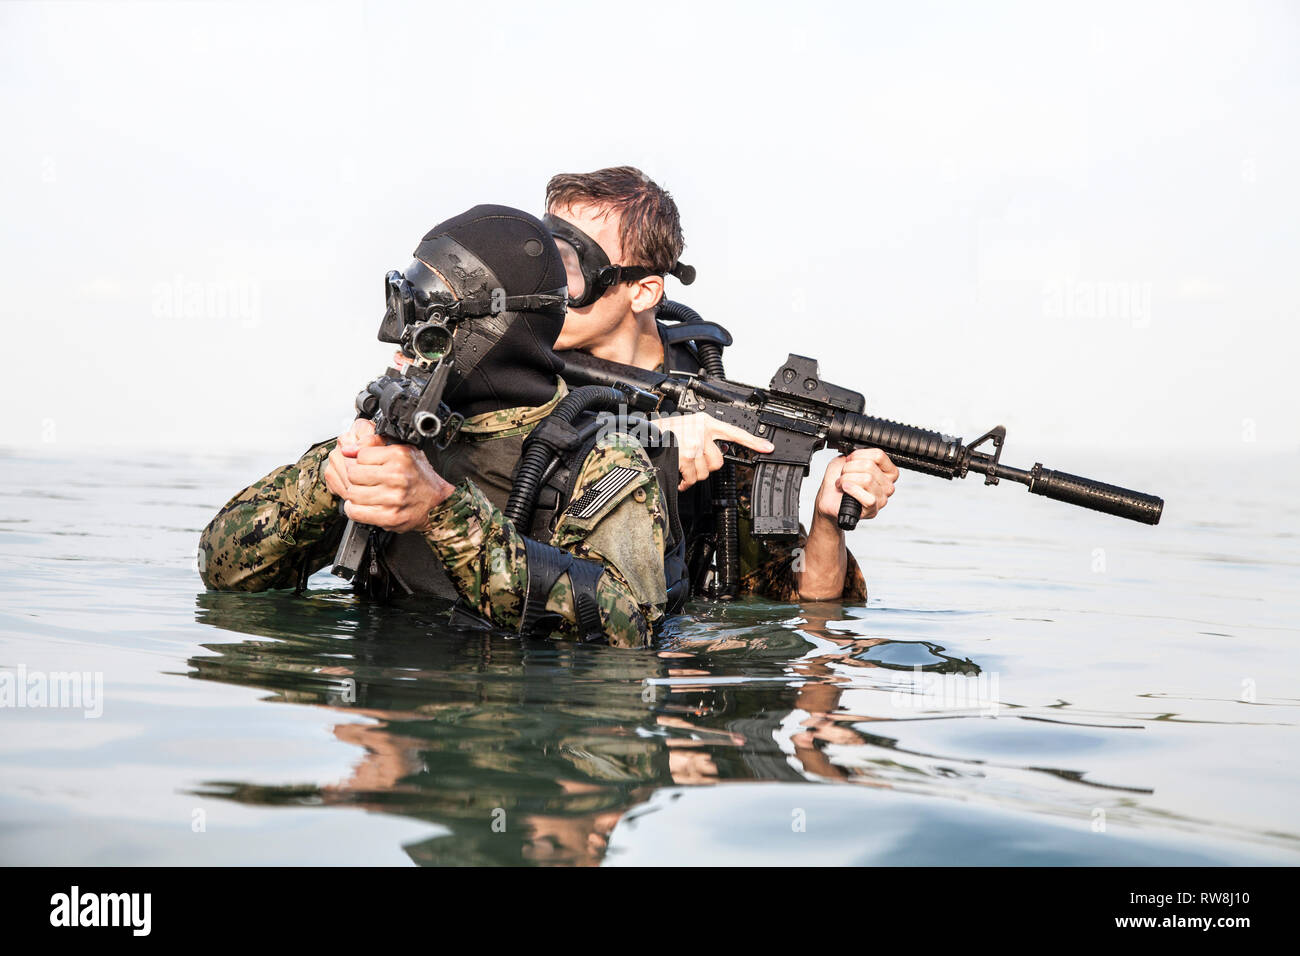 Navy SEAL frogmen with complete diving gear and weapons in